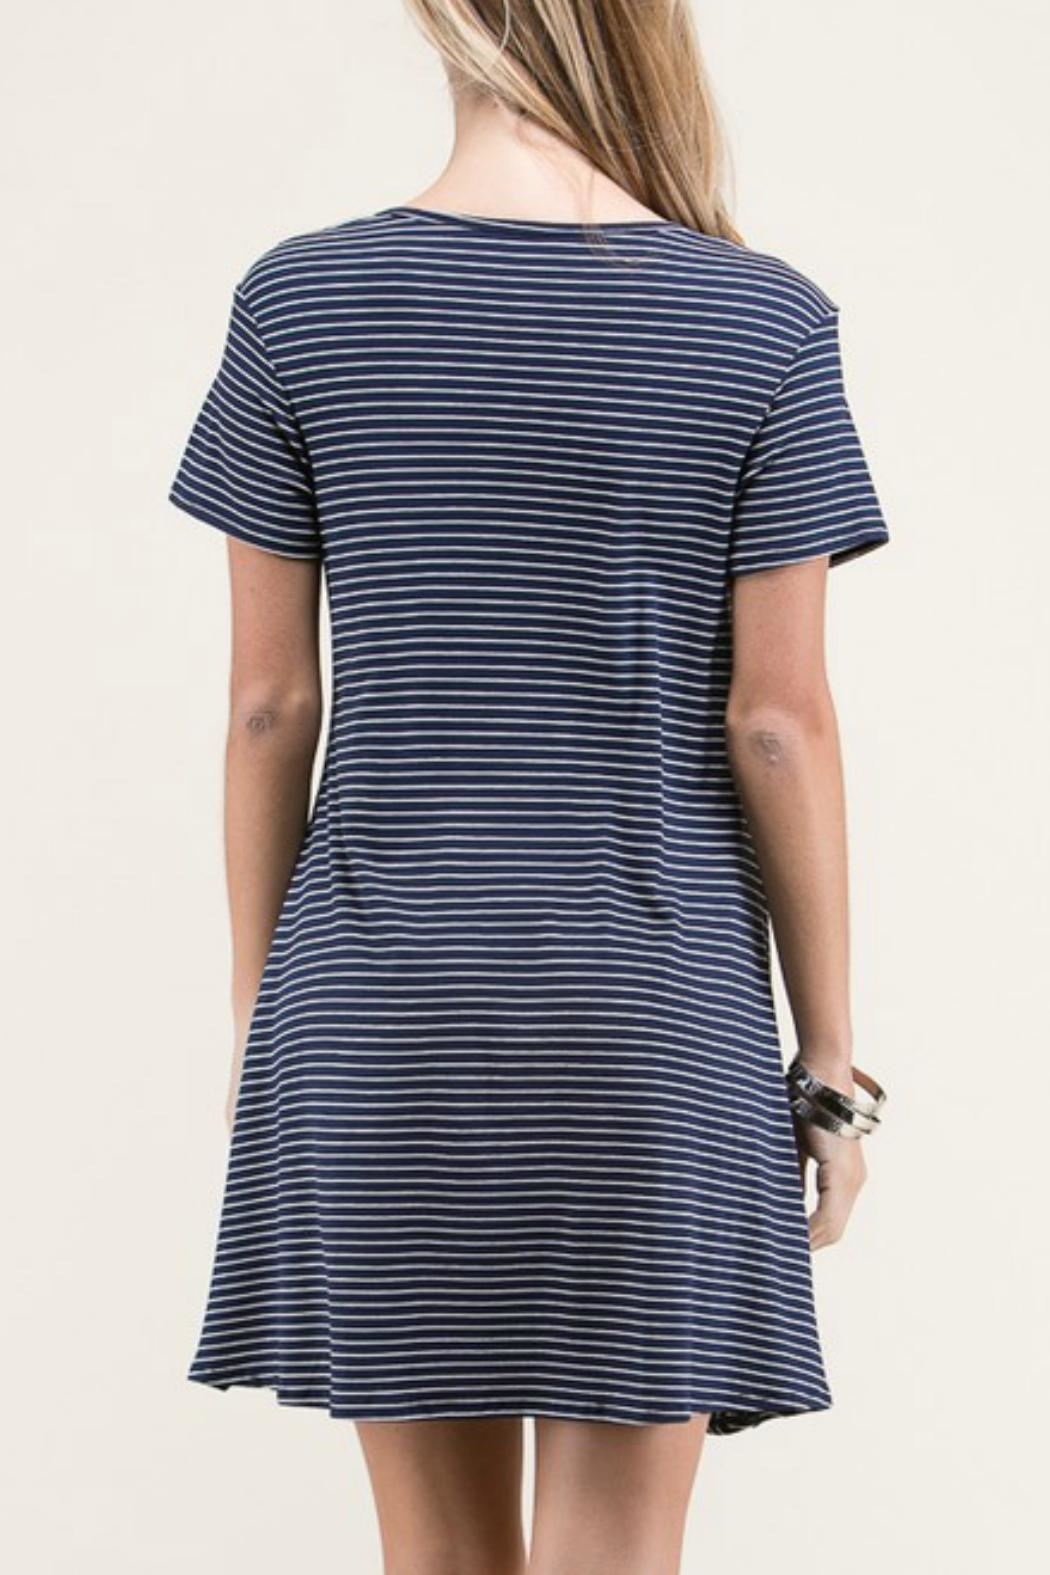 Lime n Chili Navy Stripe Dress - Back Cropped Image